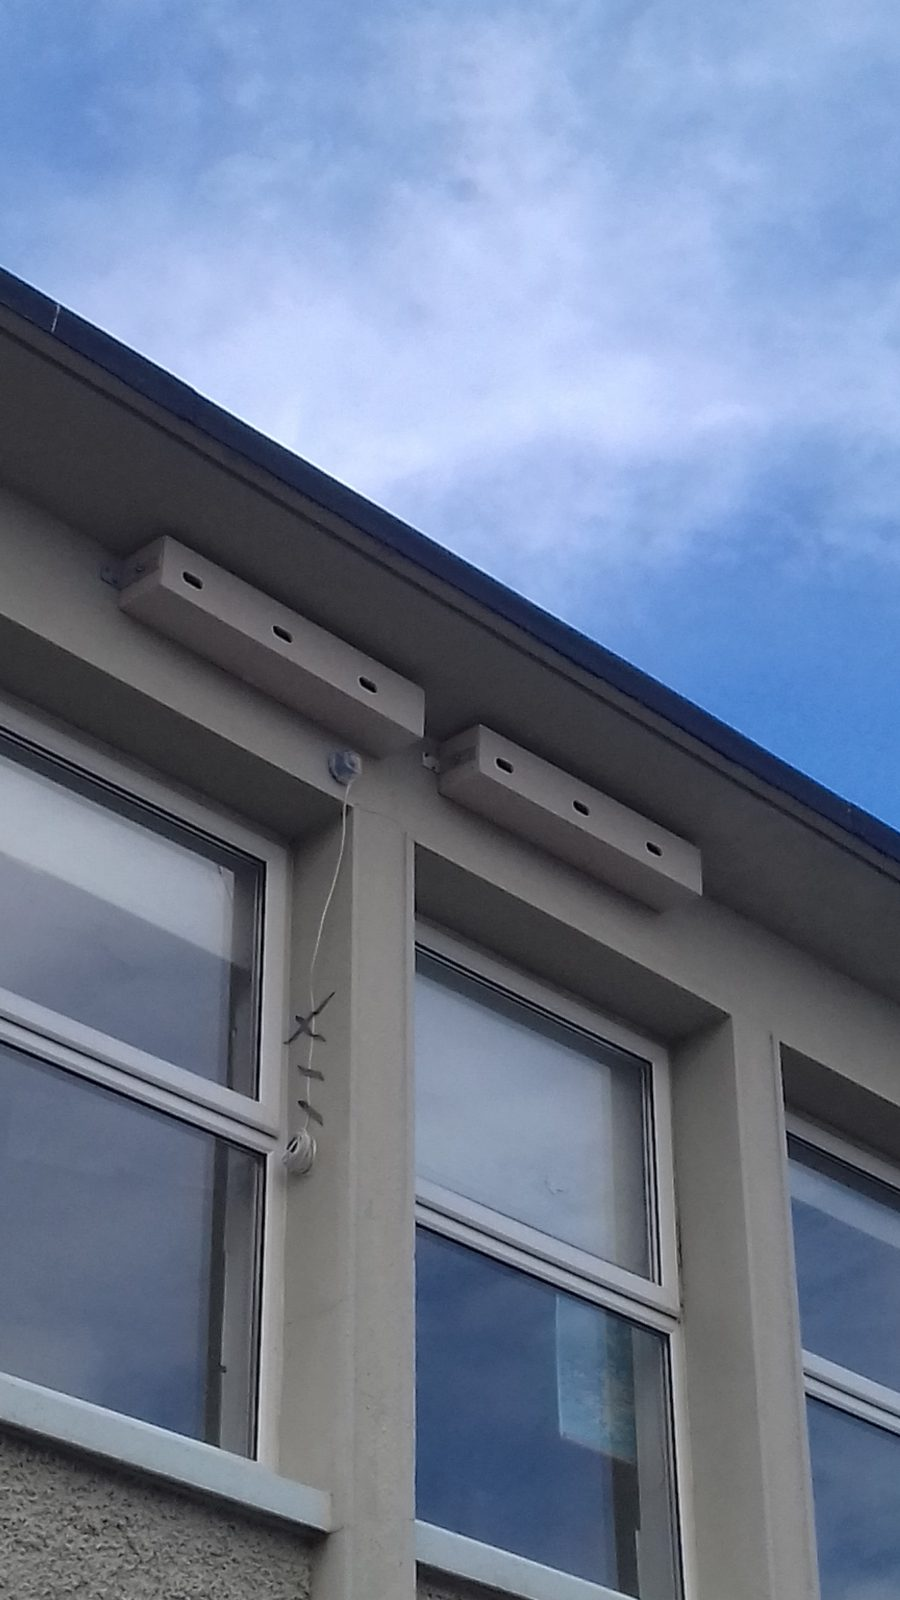 Installed nest boxes